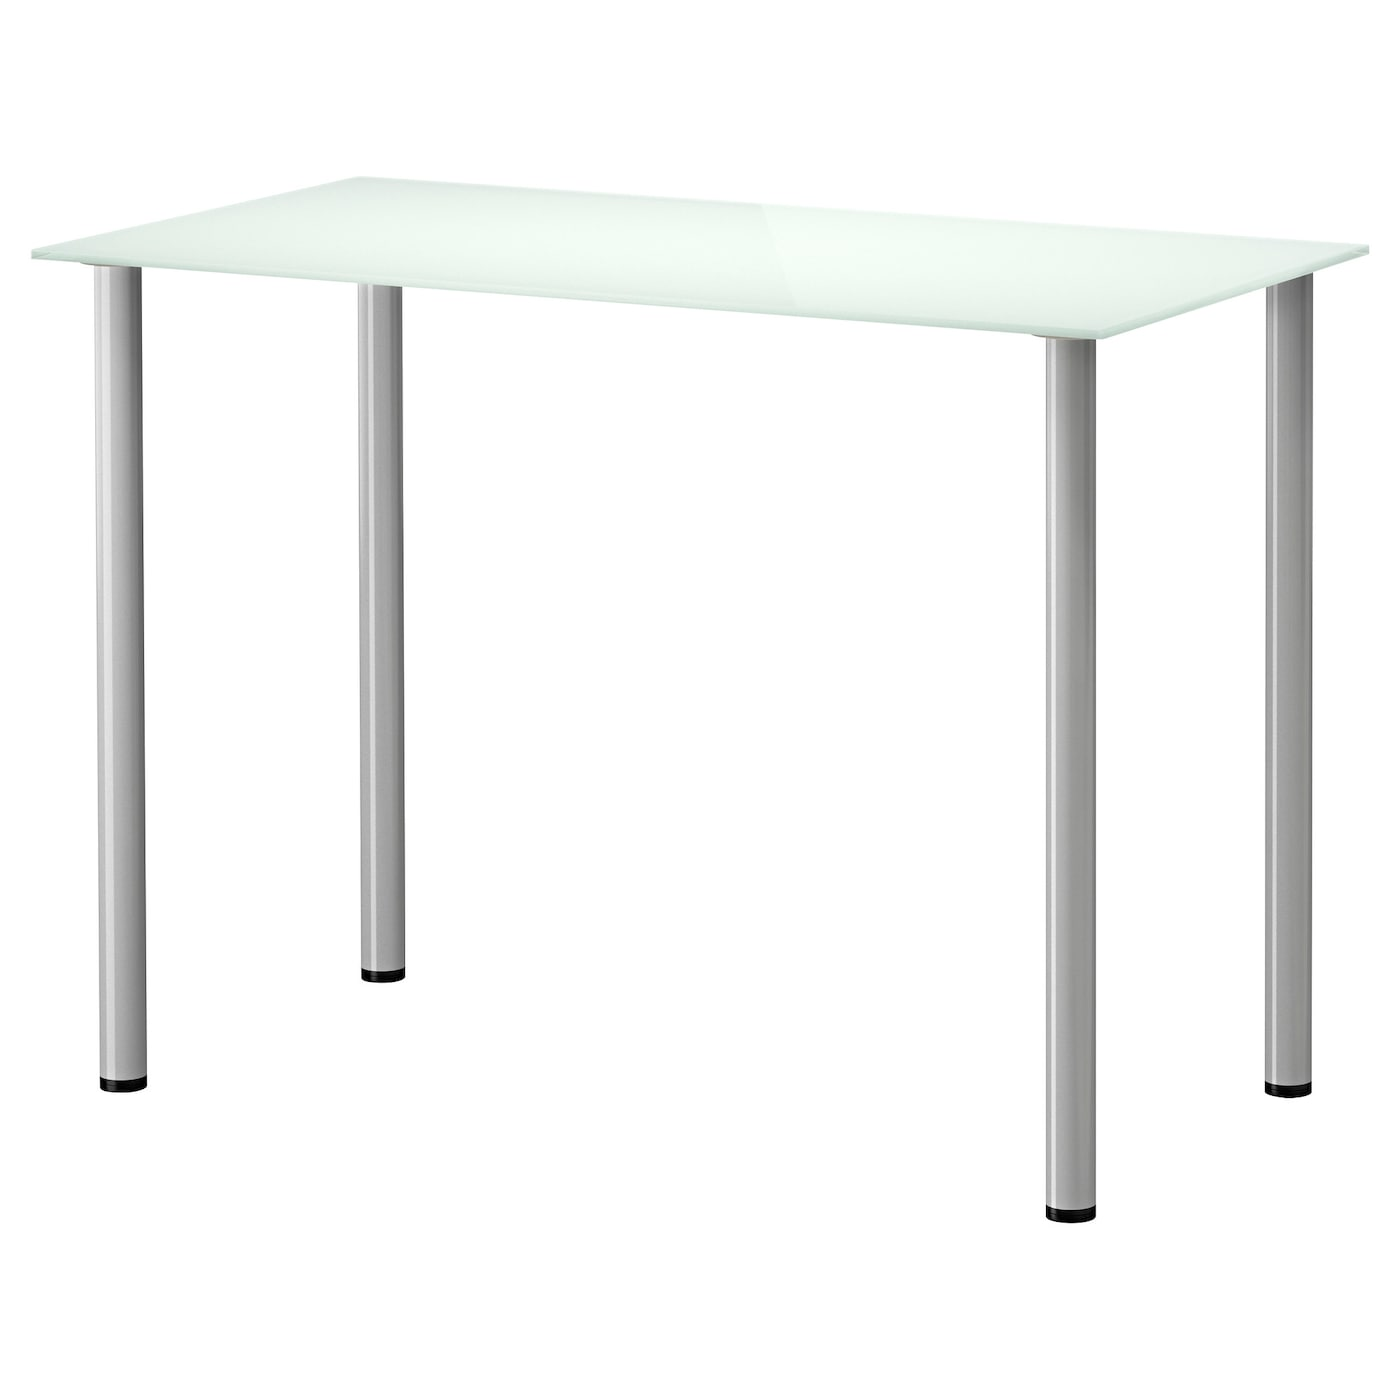 glasholm adils table glass white silver colour 99x52 cm ikea. Black Bedroom Furniture Sets. Home Design Ideas